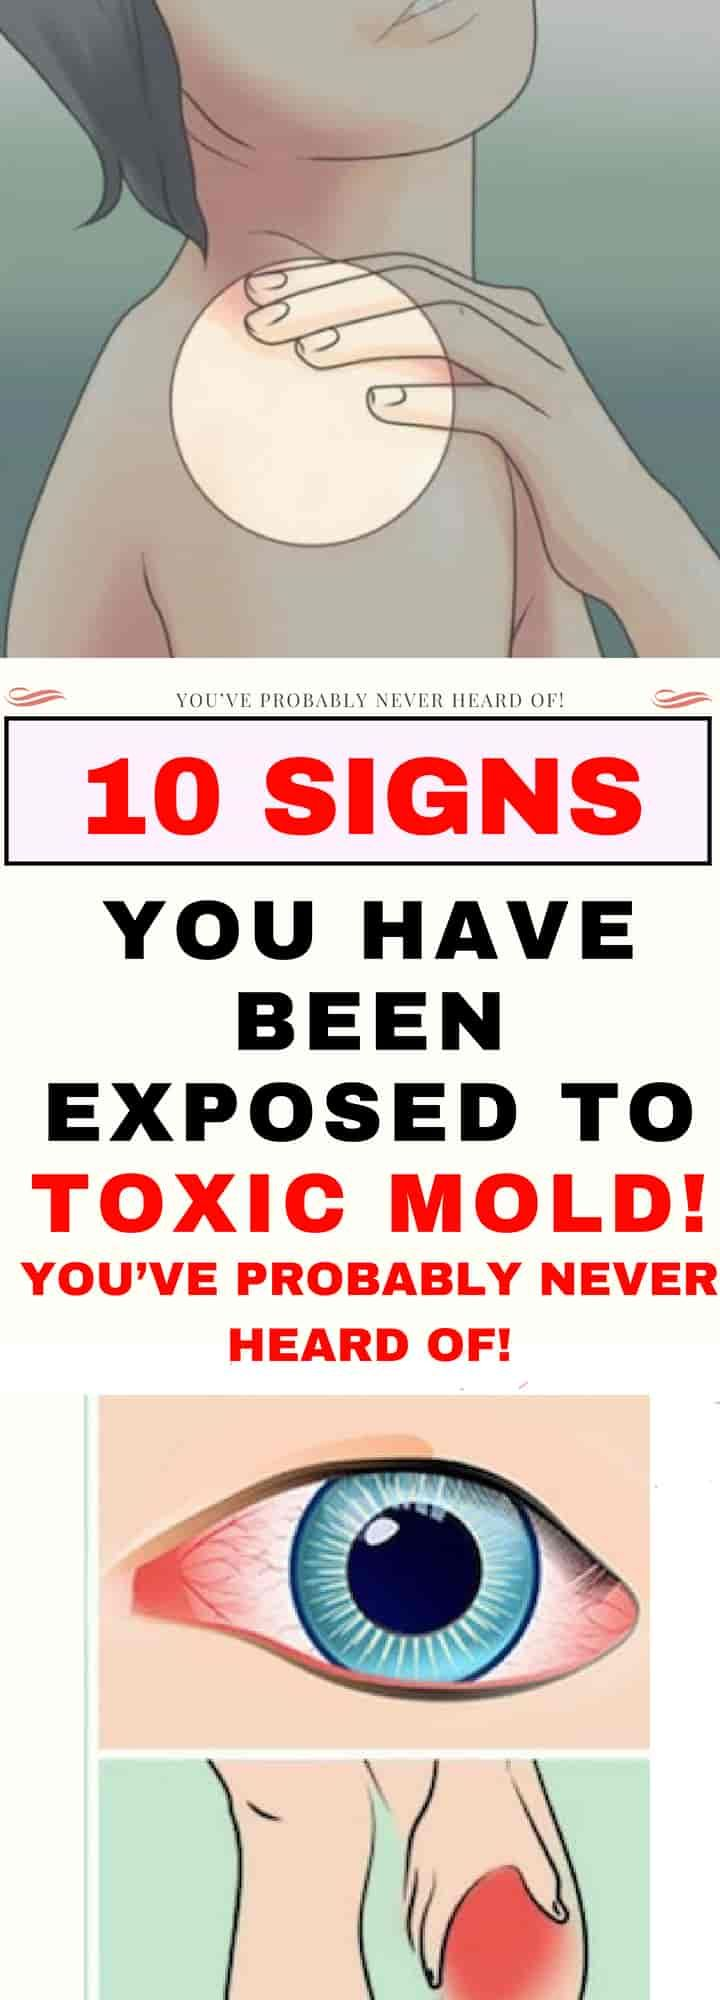 How do you detox from mold exposure